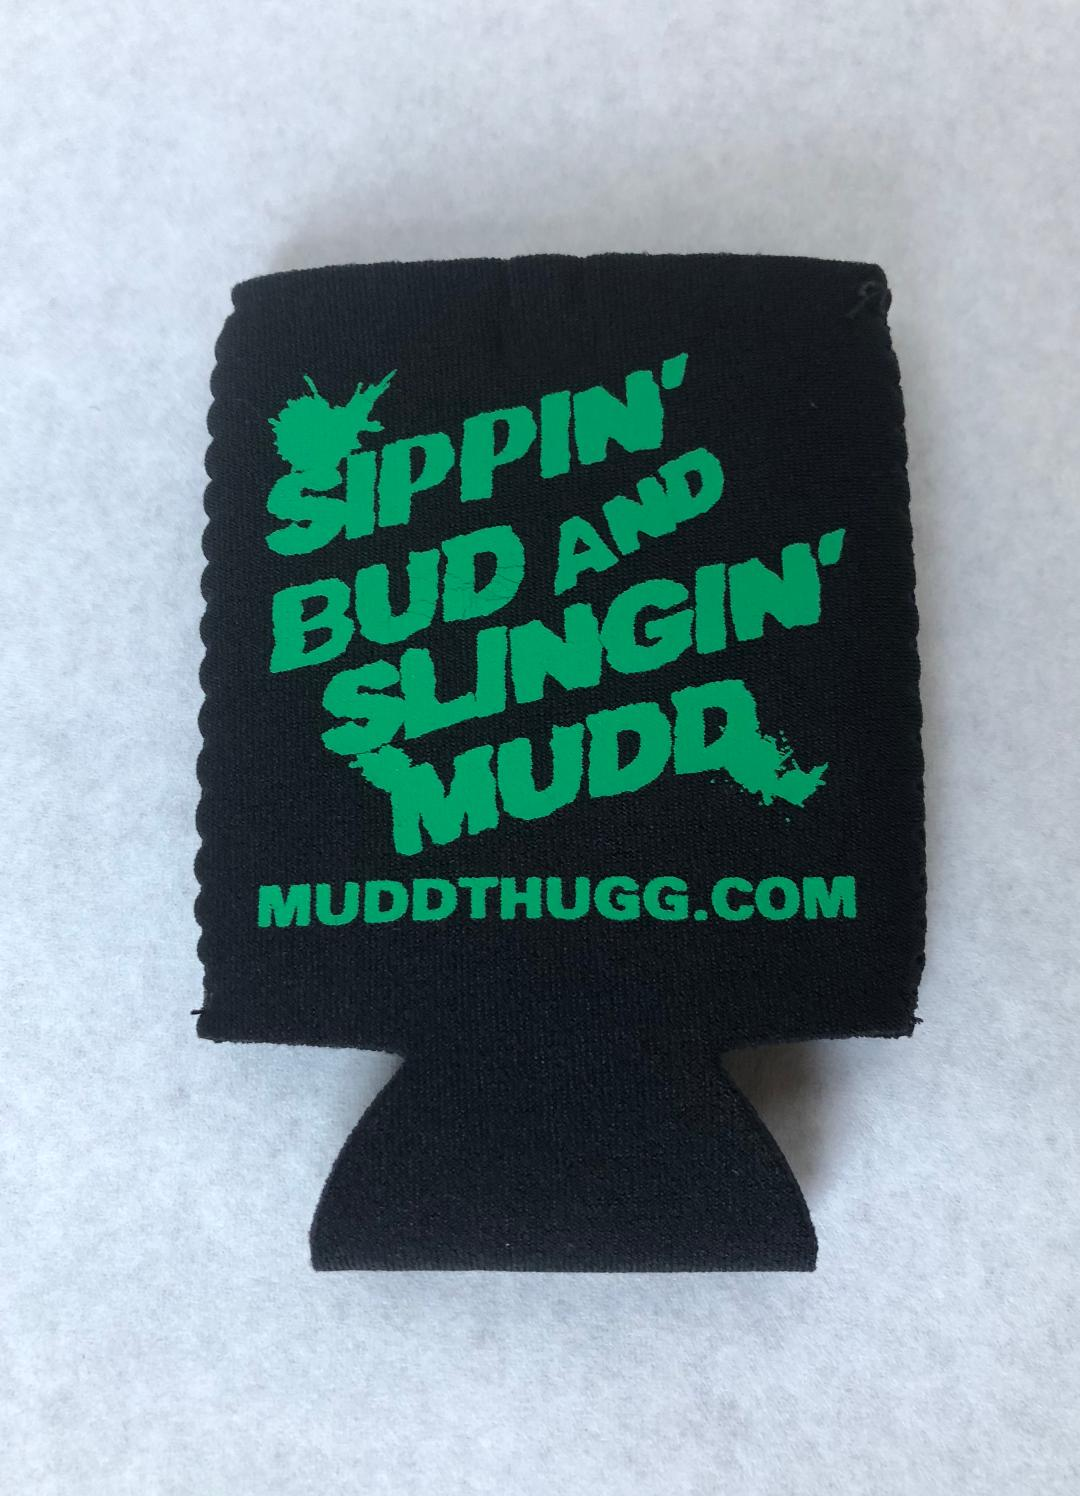 Black & Green Mudd Thugg Koozie - ProSport Outdoors